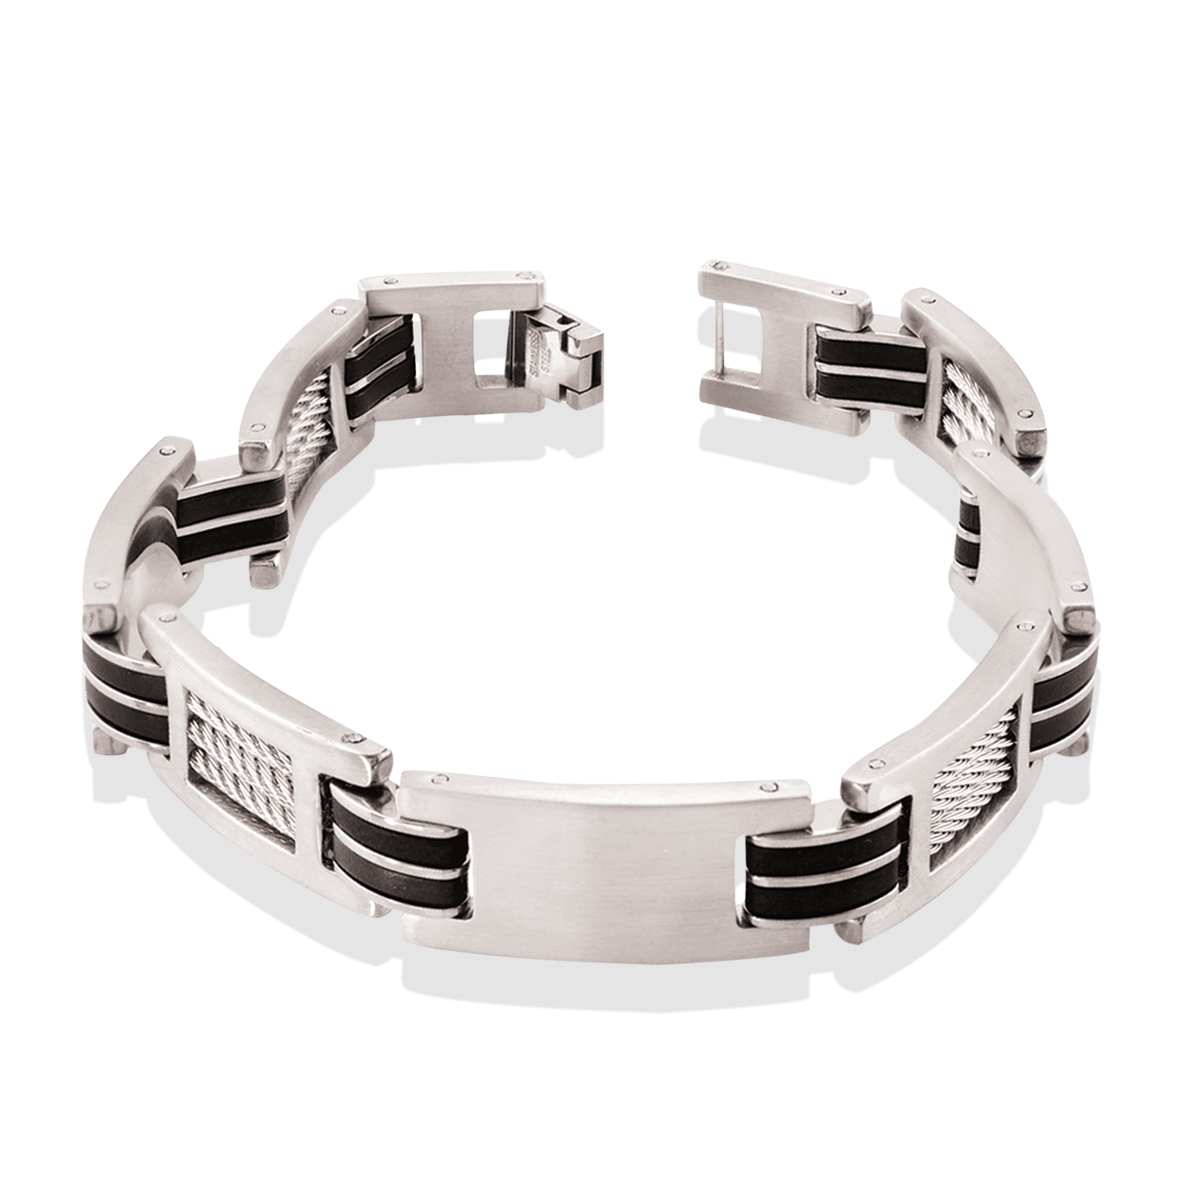 8.5'' Bracelet - Stainless steel & rubber and cables